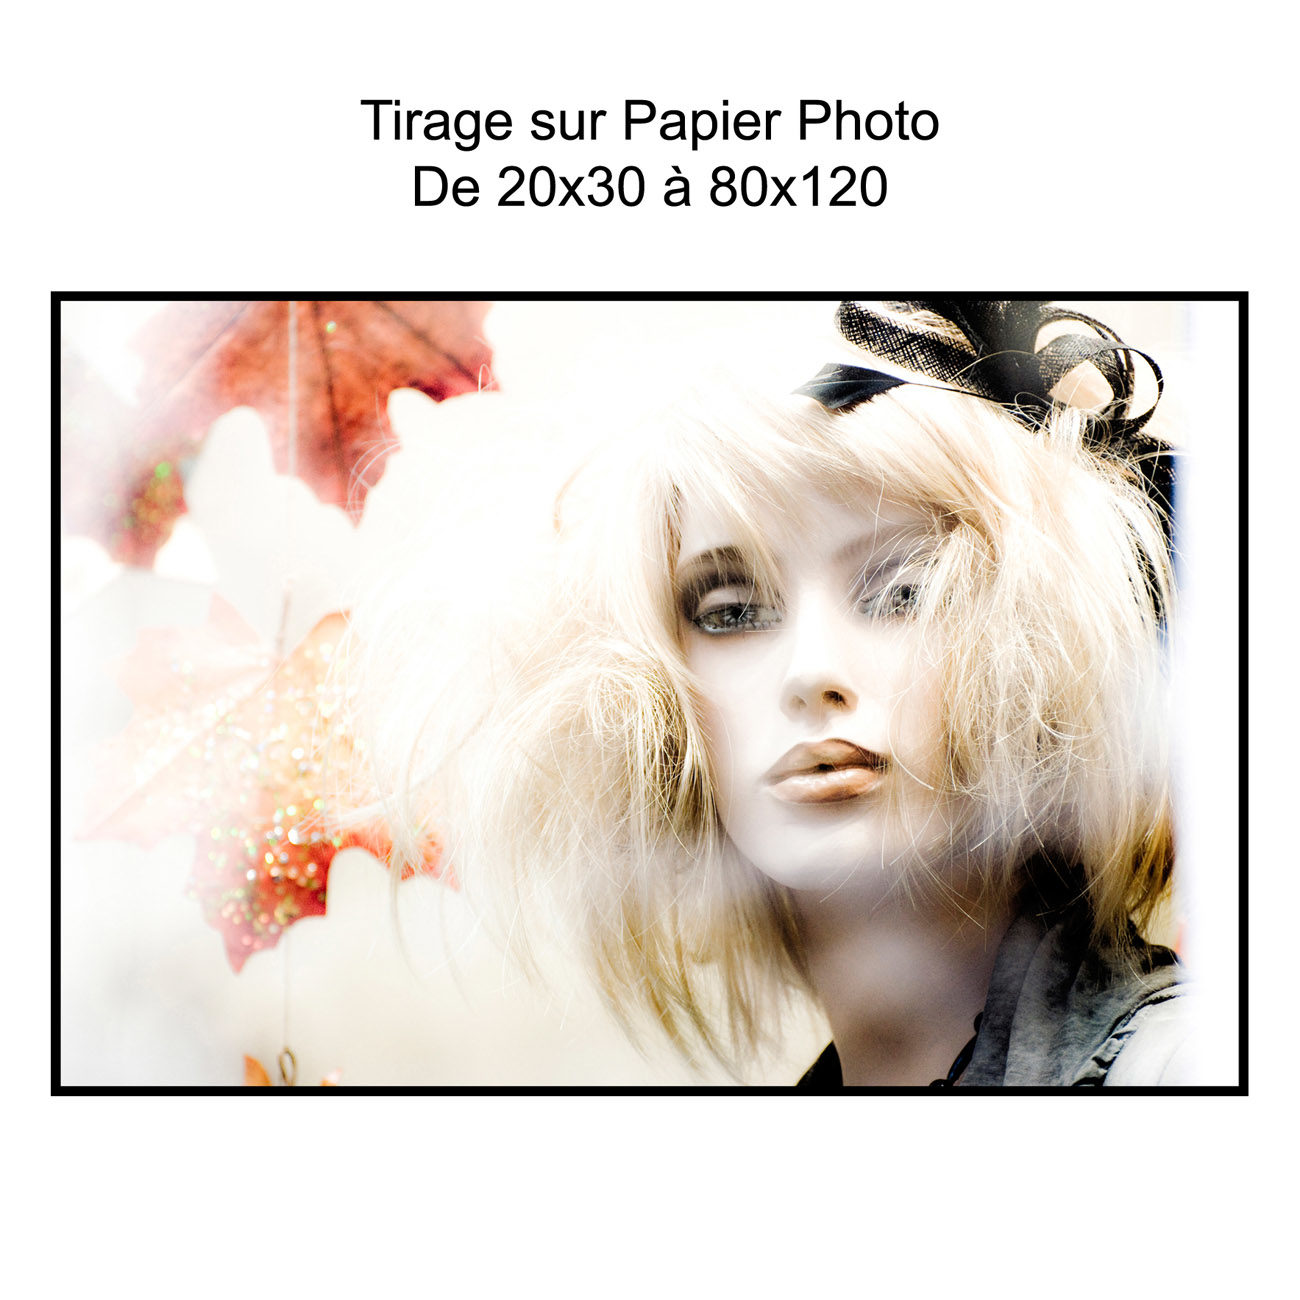 Tirage sur Papier photo carree